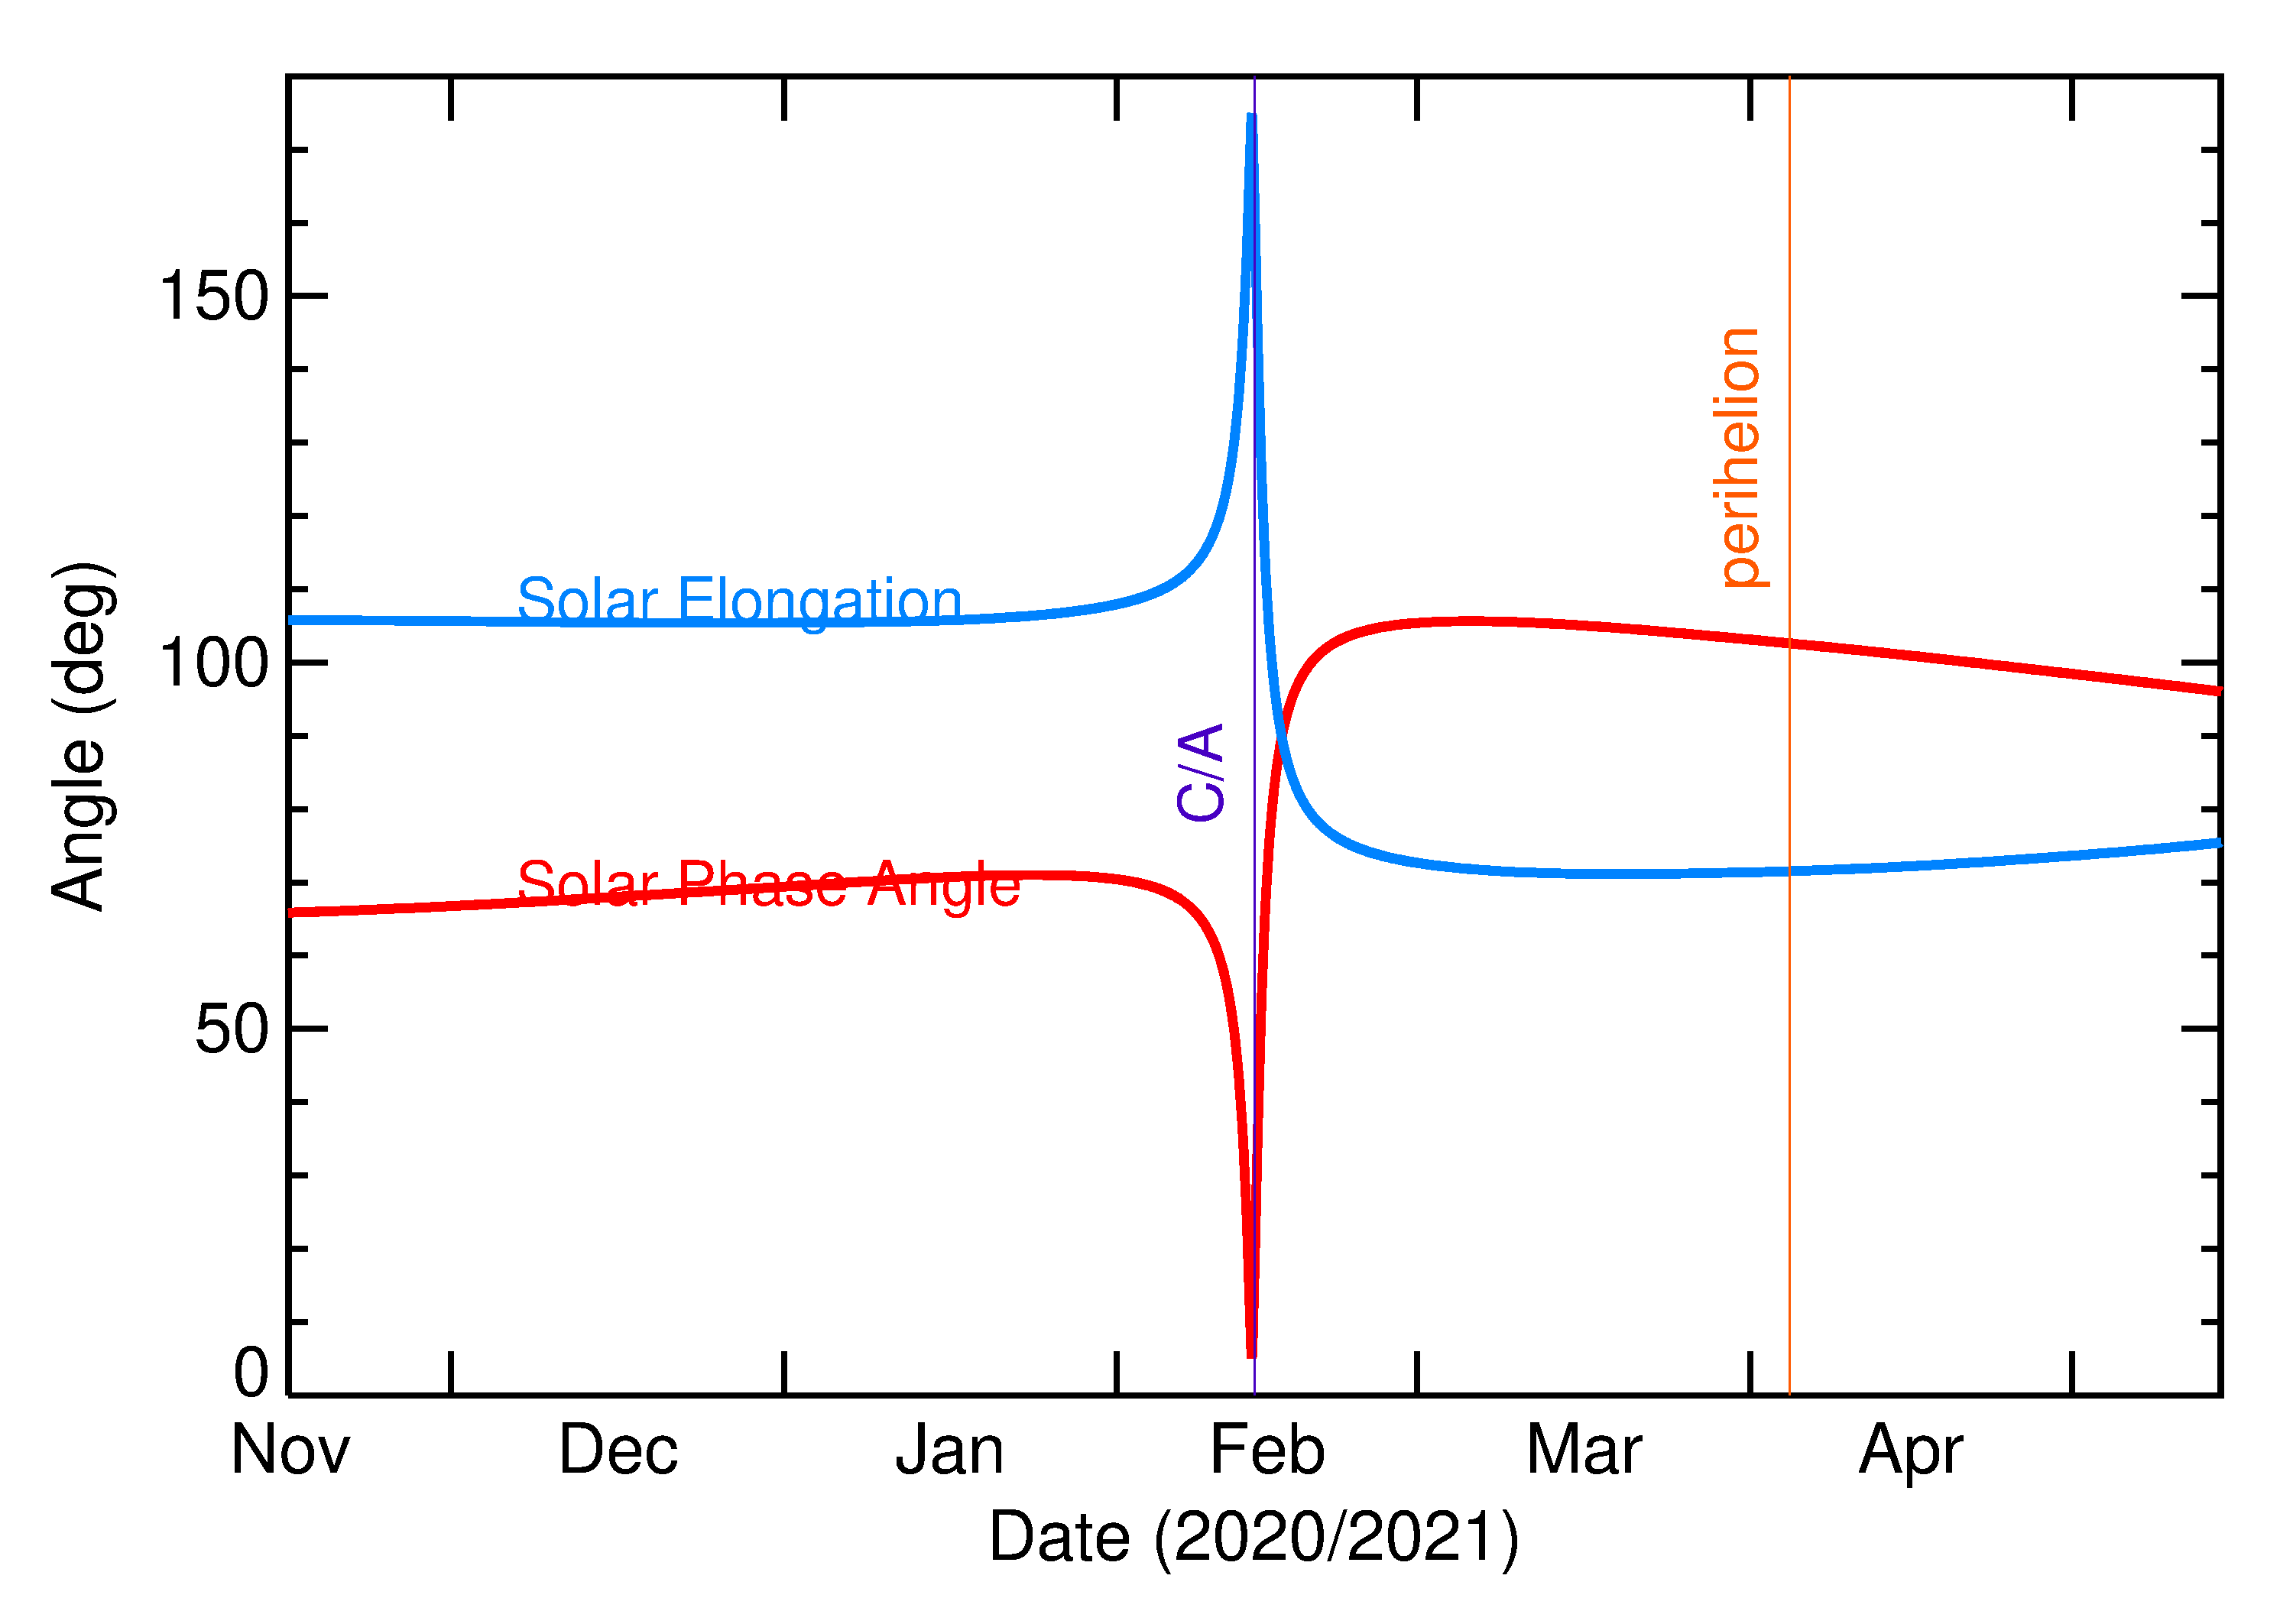 Solar Elongation and Solar Phase Angle of 2021 CC7 in the months around closest approach